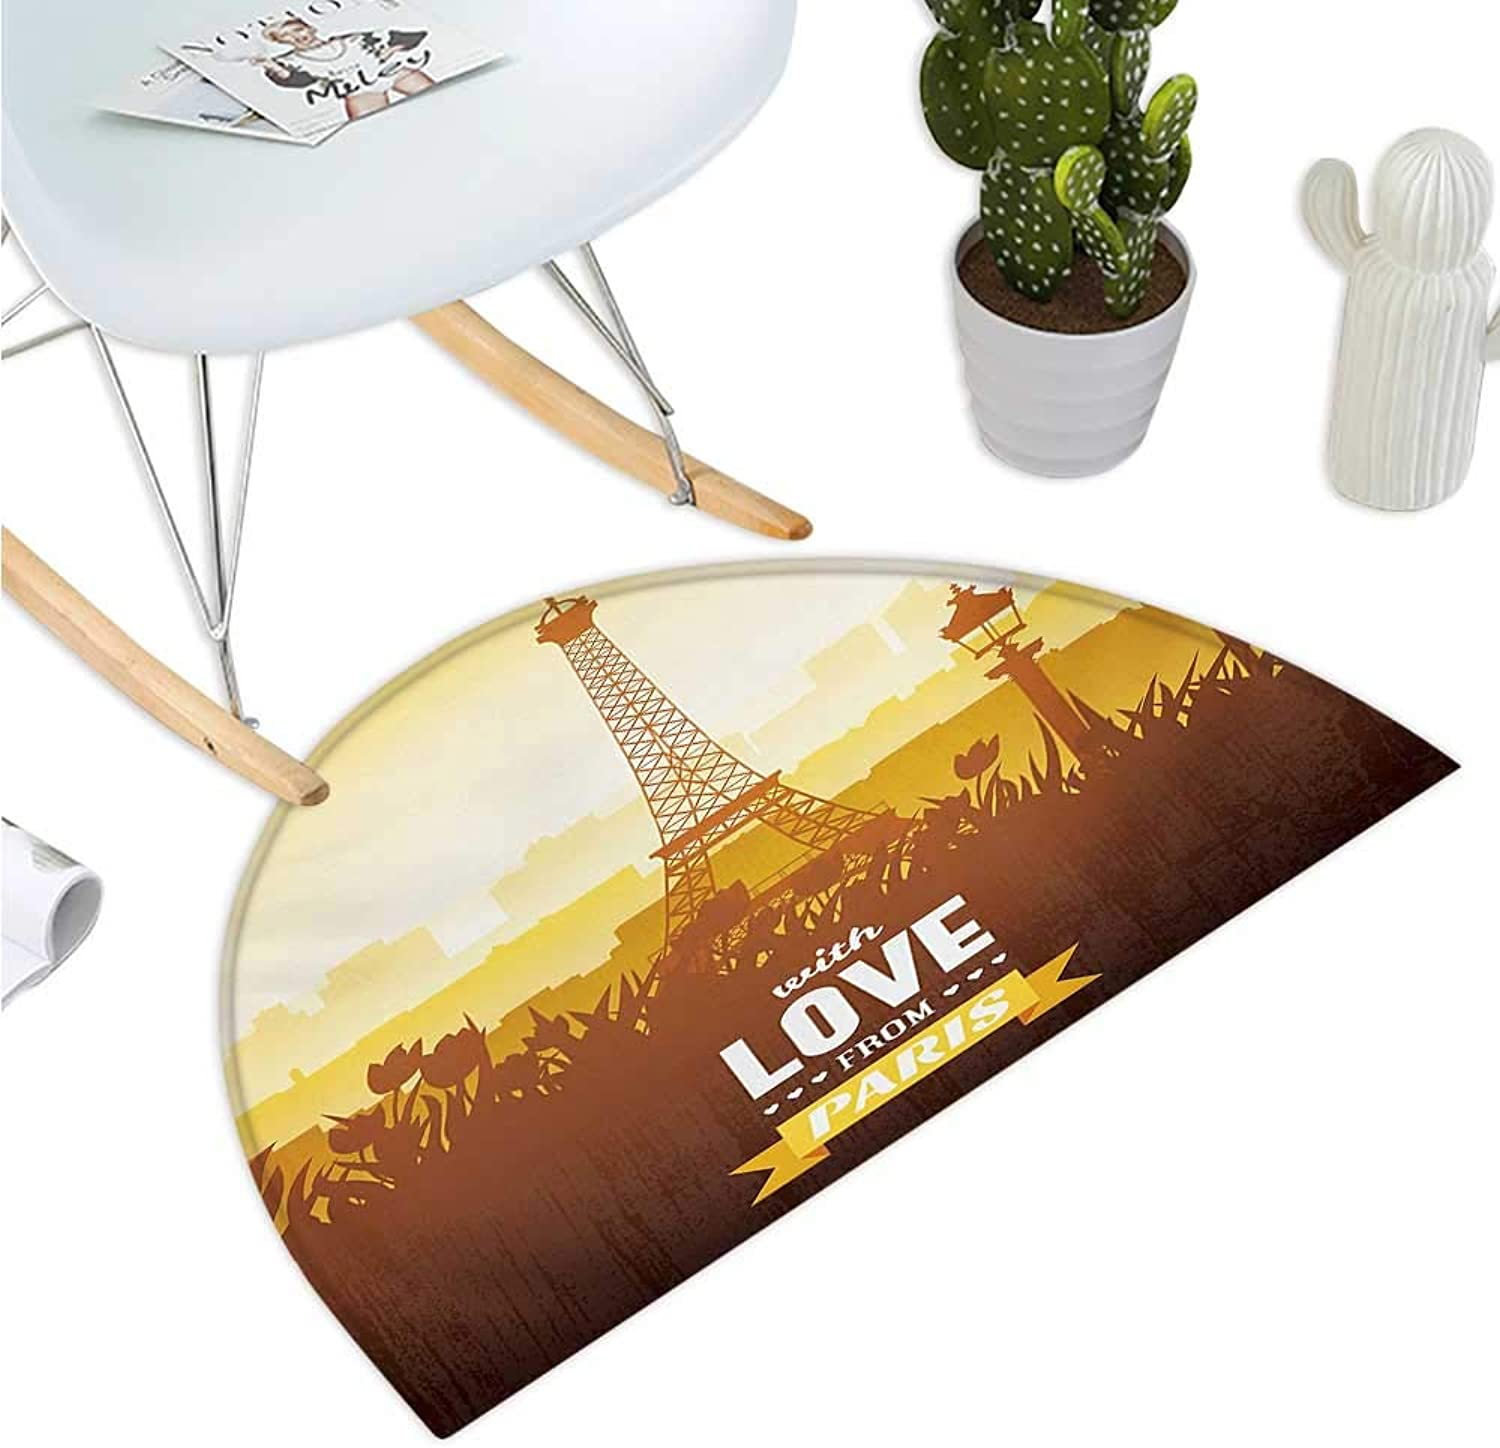 Paris Semicircular Cushion Eiffel Tower with Tulip and City Silhouette Nostalgic Town Floral Romantic Entry Door Mat H 39.3  xD 59  orange Yellow Brown